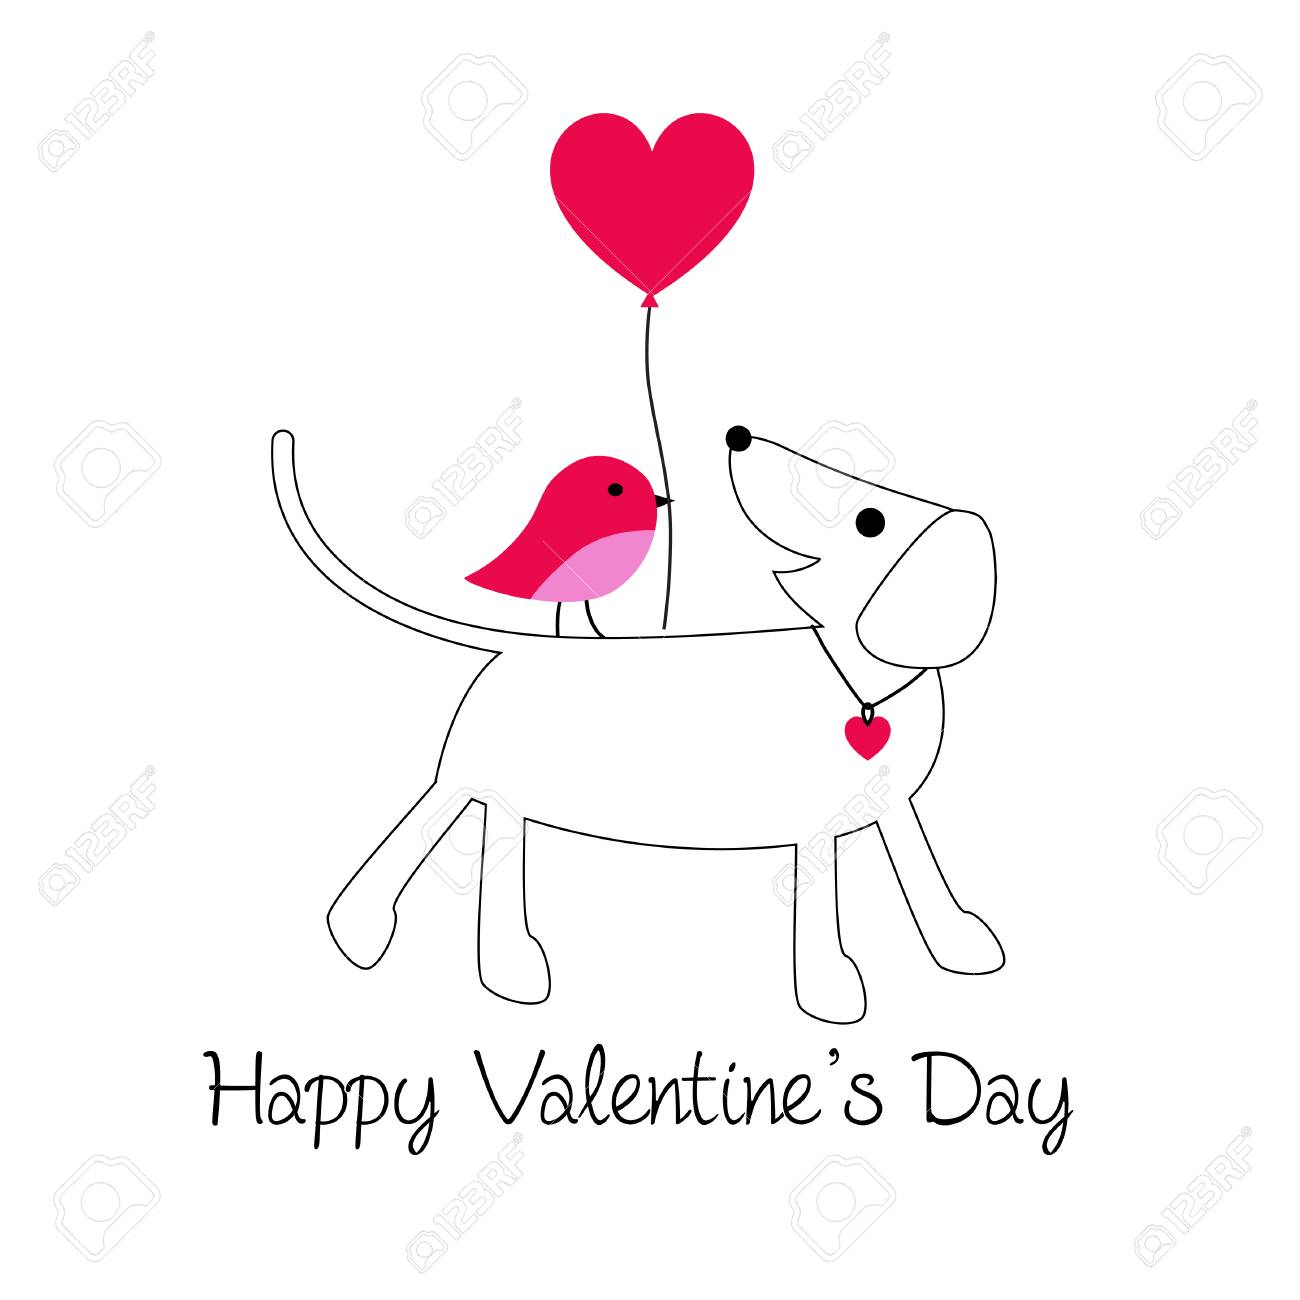 cute dog and bird valentine vector graphic with balloon - 94182668